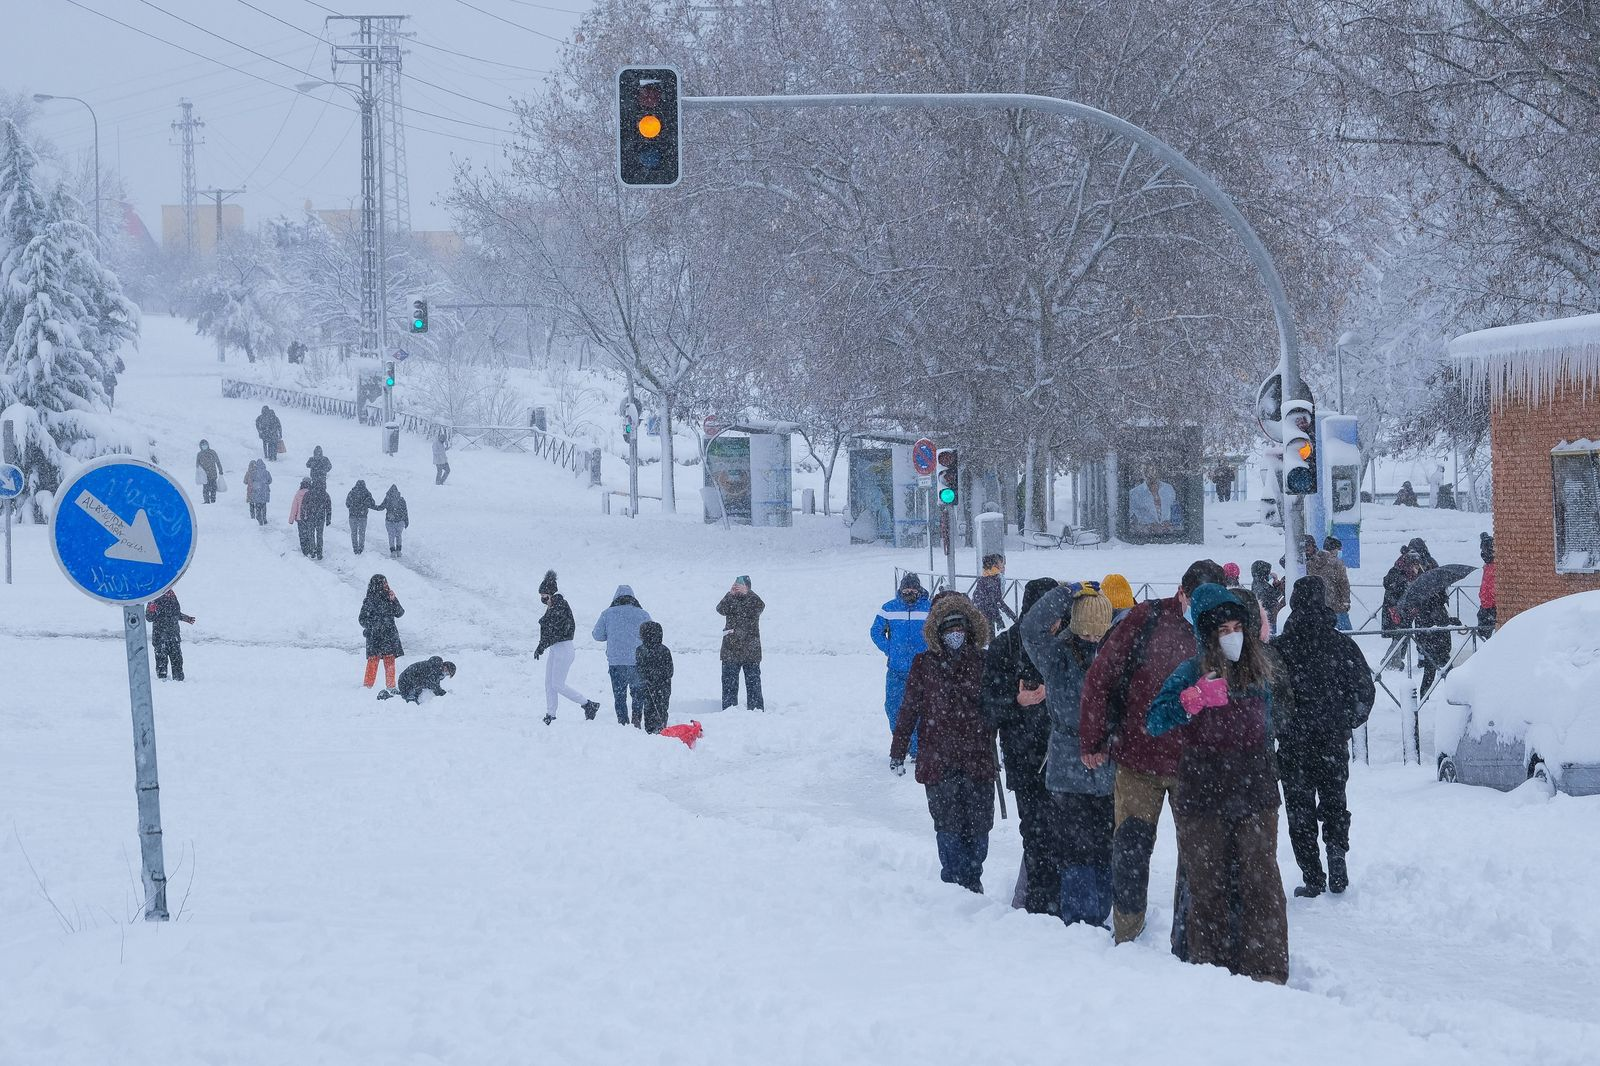 third day of snowfall in the city of Madrid leaves cars buried by snow and streets completely covered with more than 40